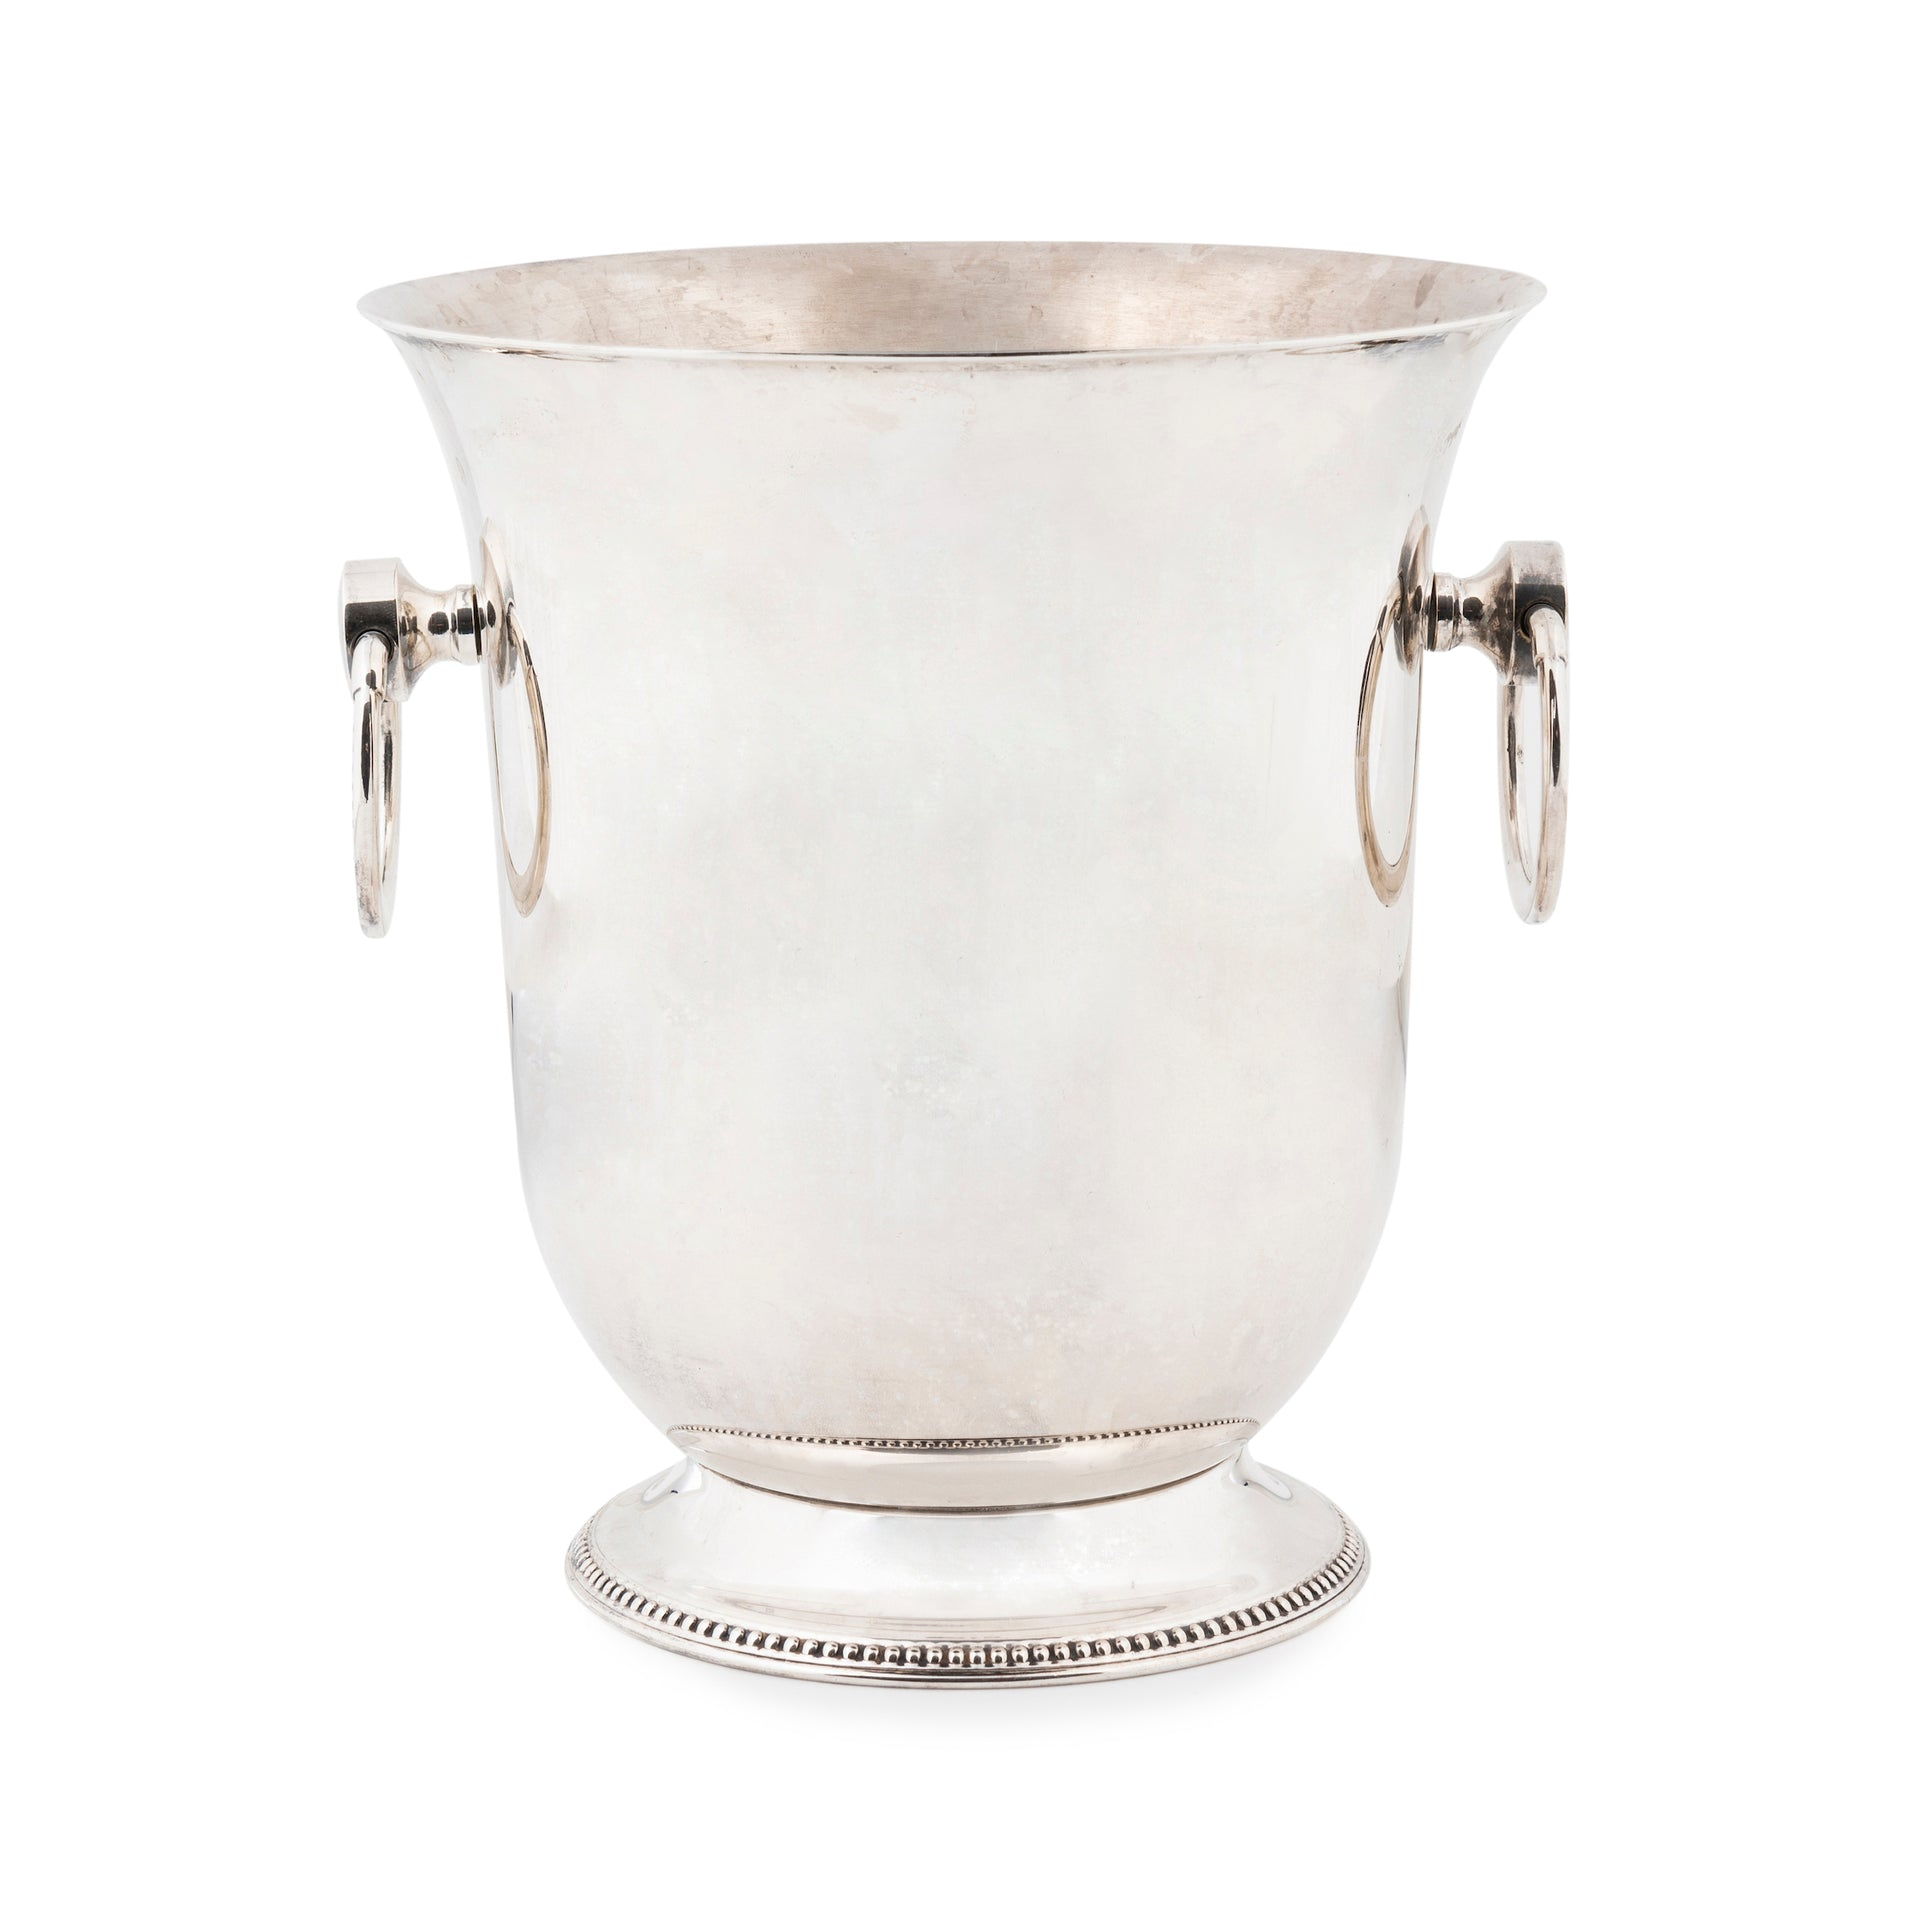 A French vintage silver plated twin handled wine cooler